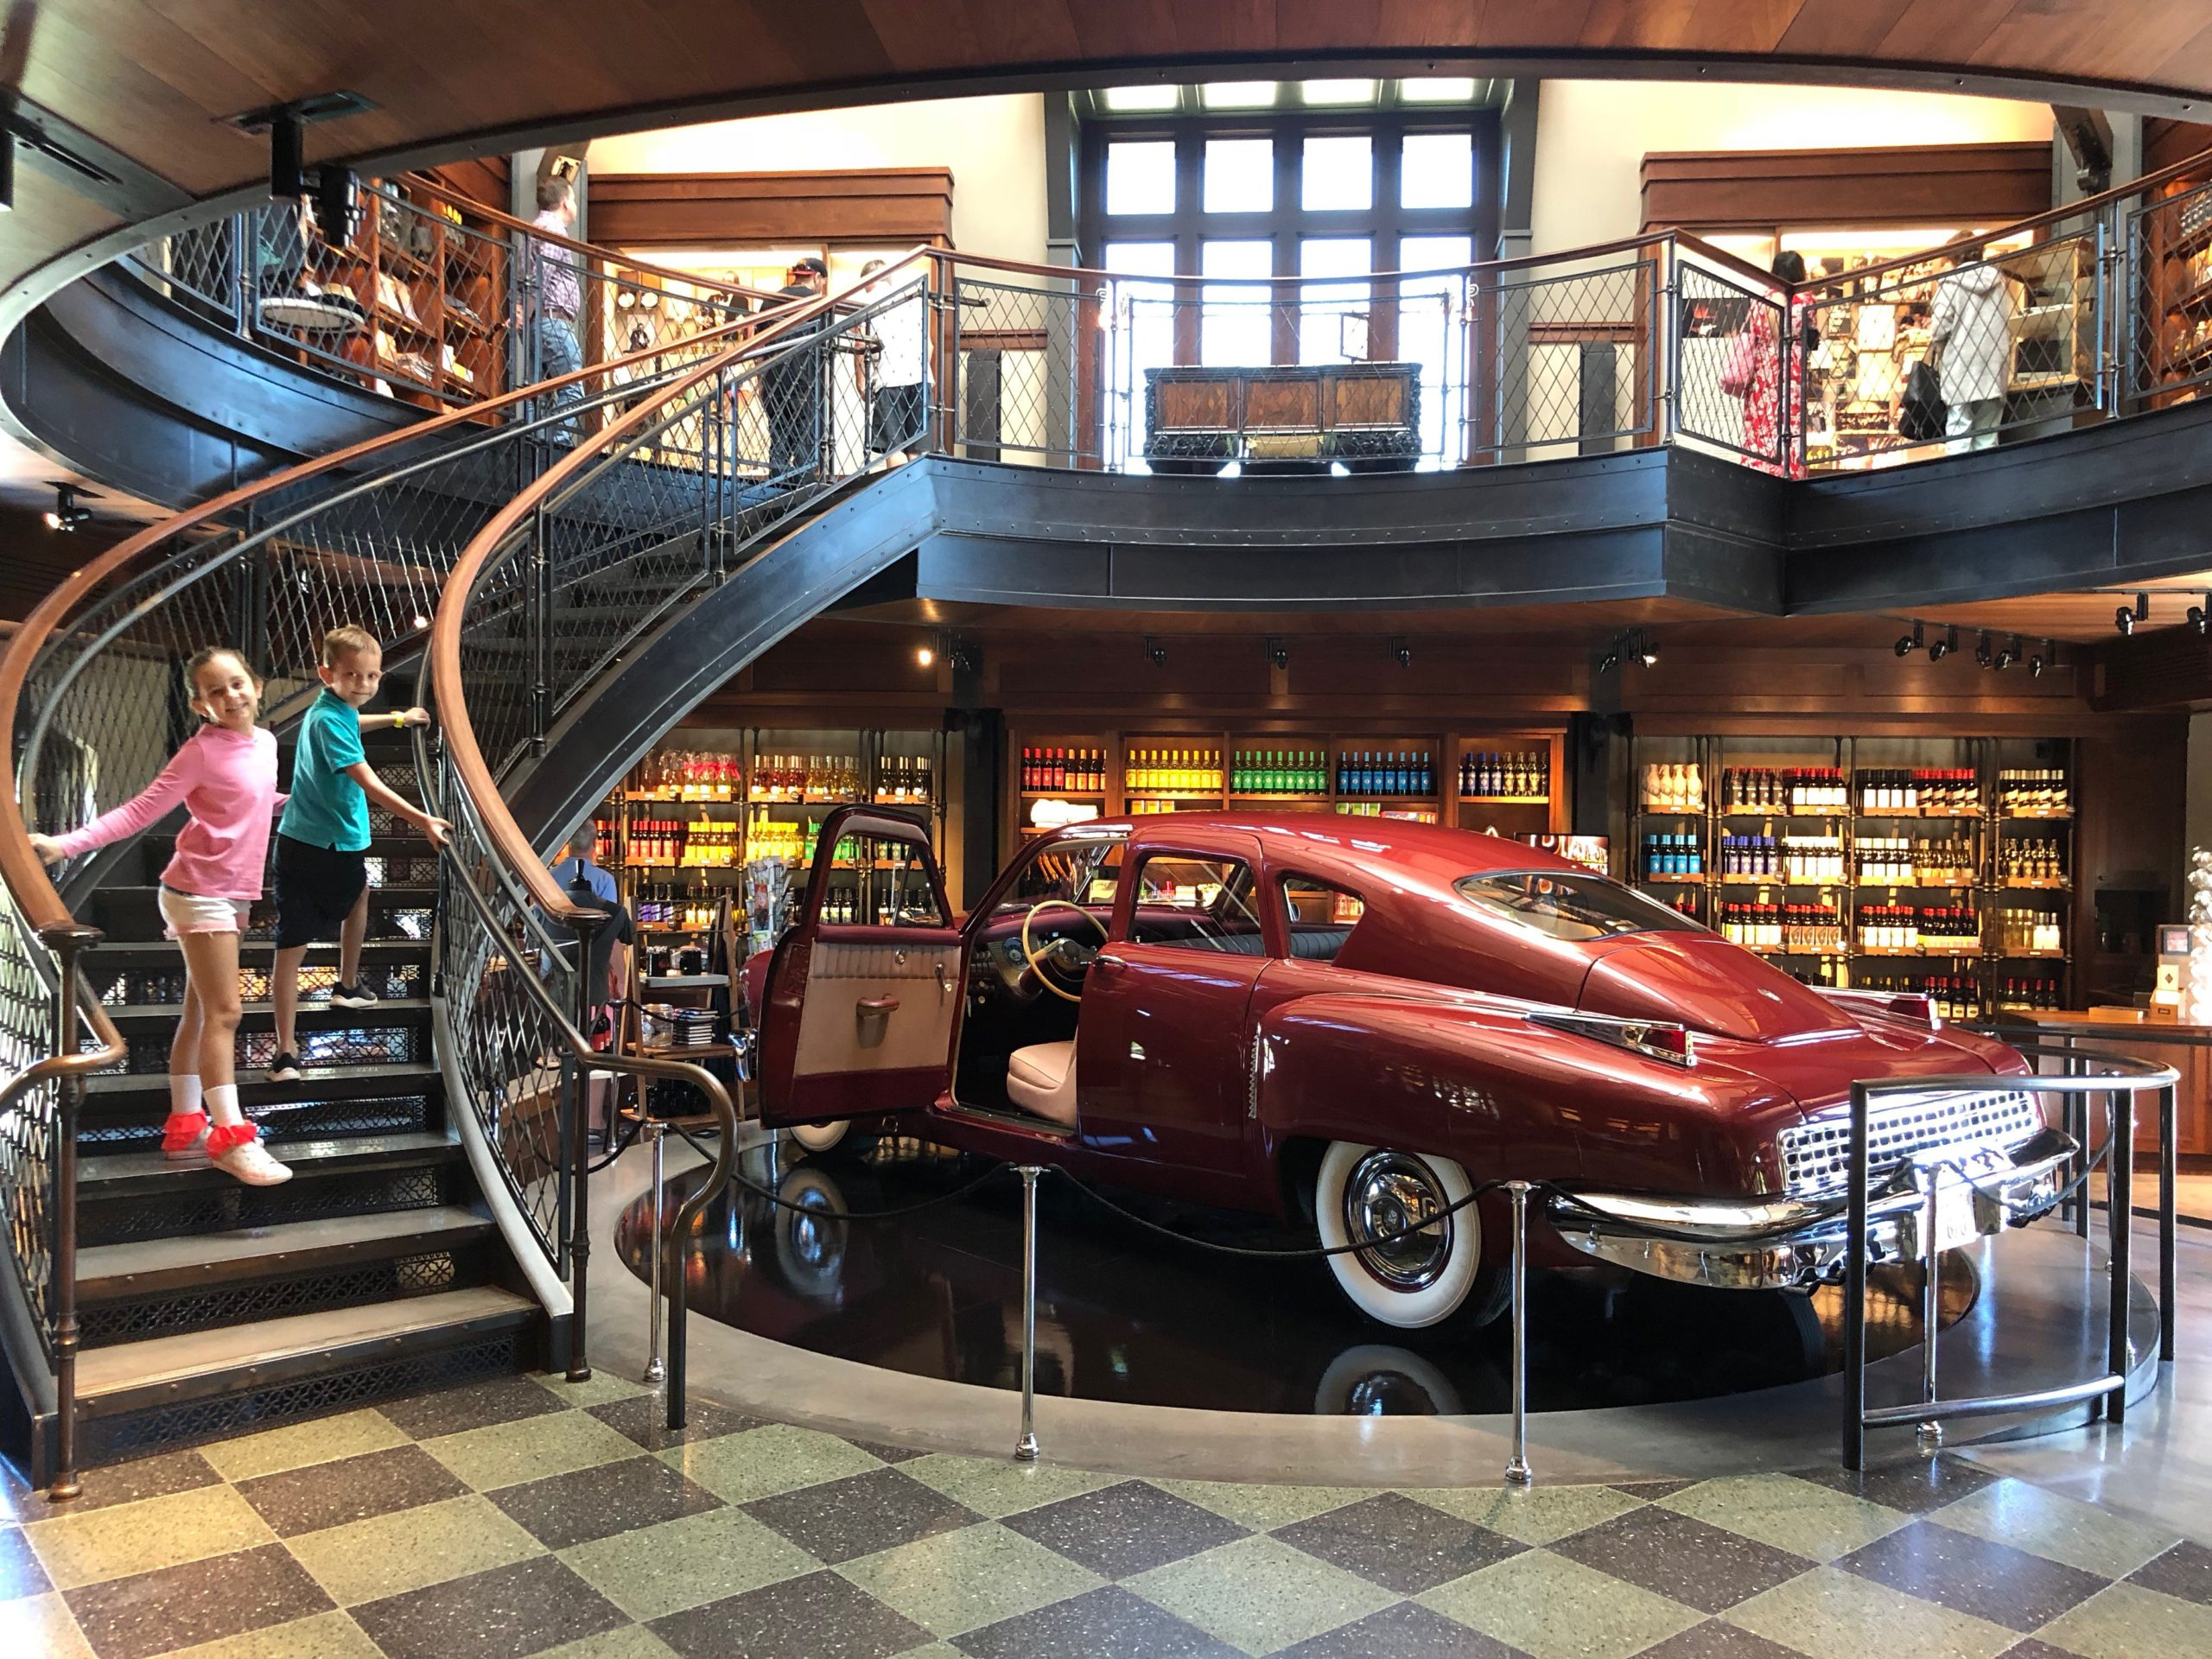 Kids can check out the fun movie memorabilia at Francis Ford Coppola winery